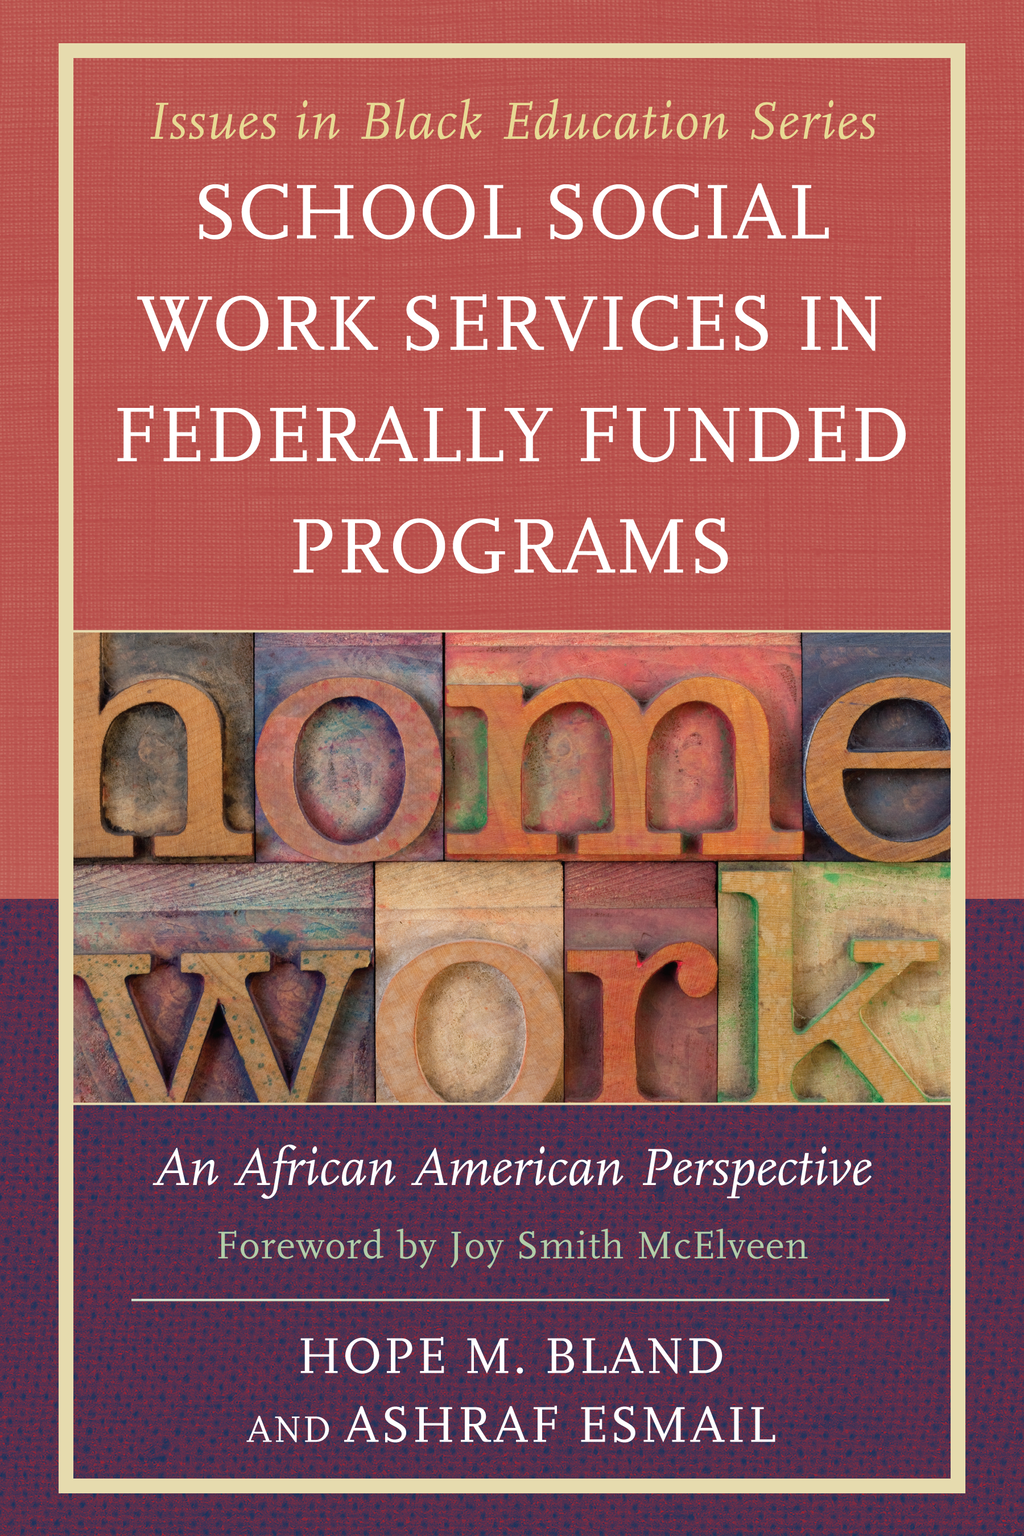 School Social Work Services in Federally Funded Programs An African American Perspective